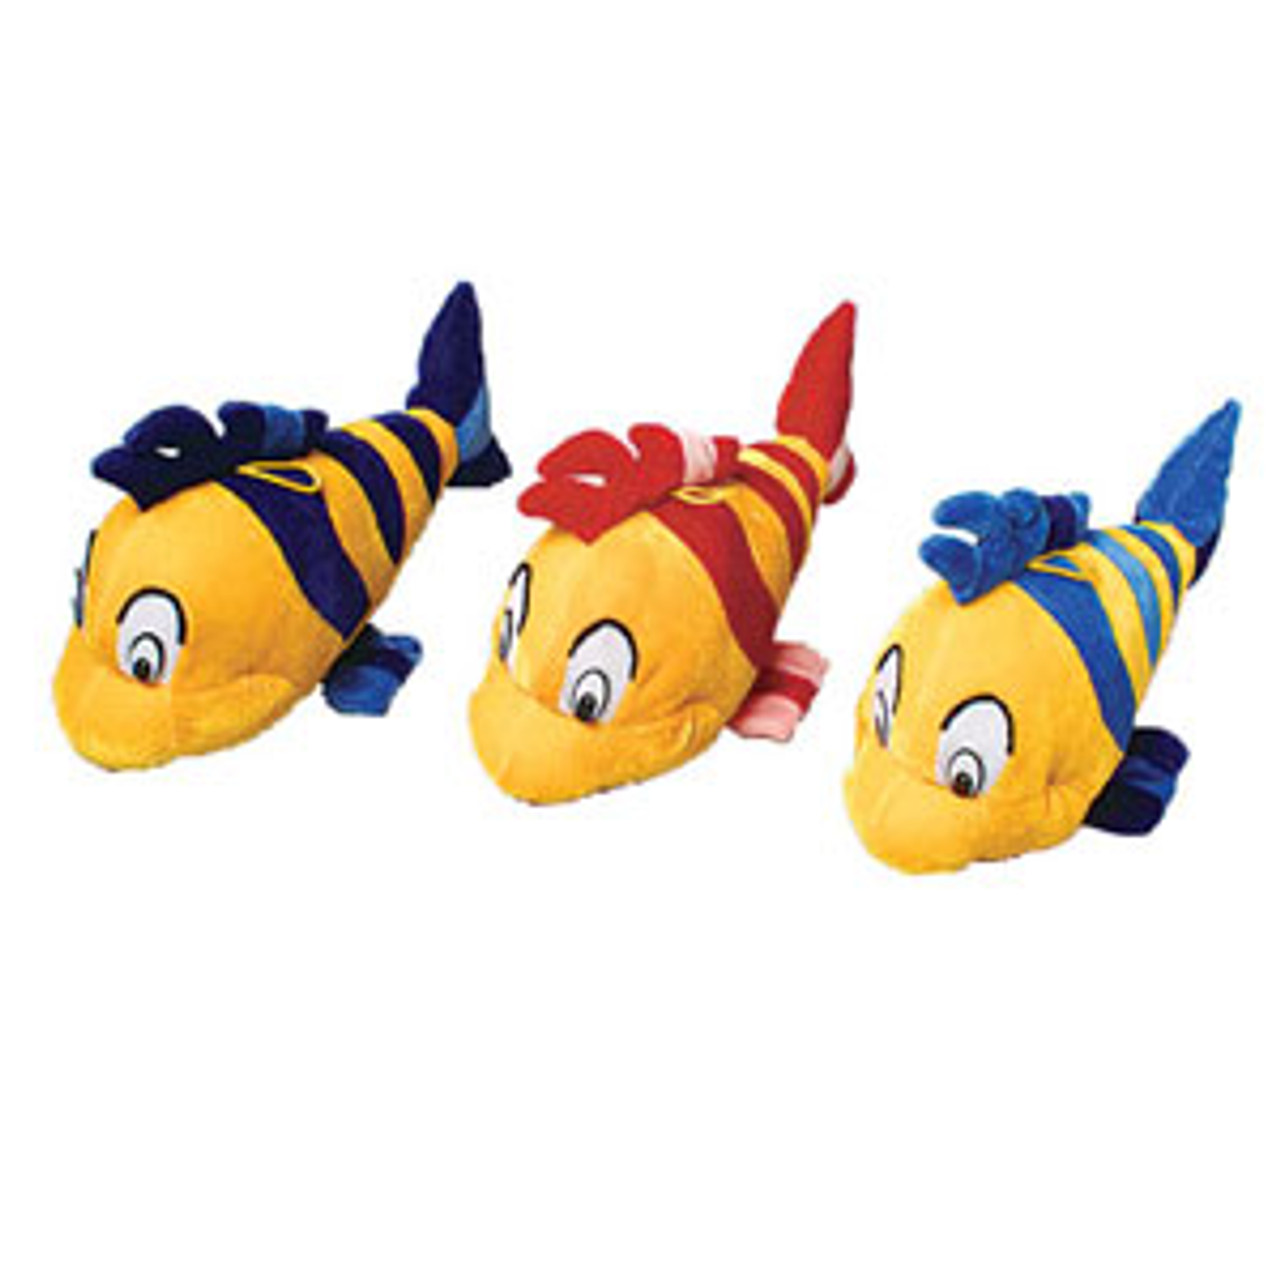 Plush Fish Striped; 3 assorted colors